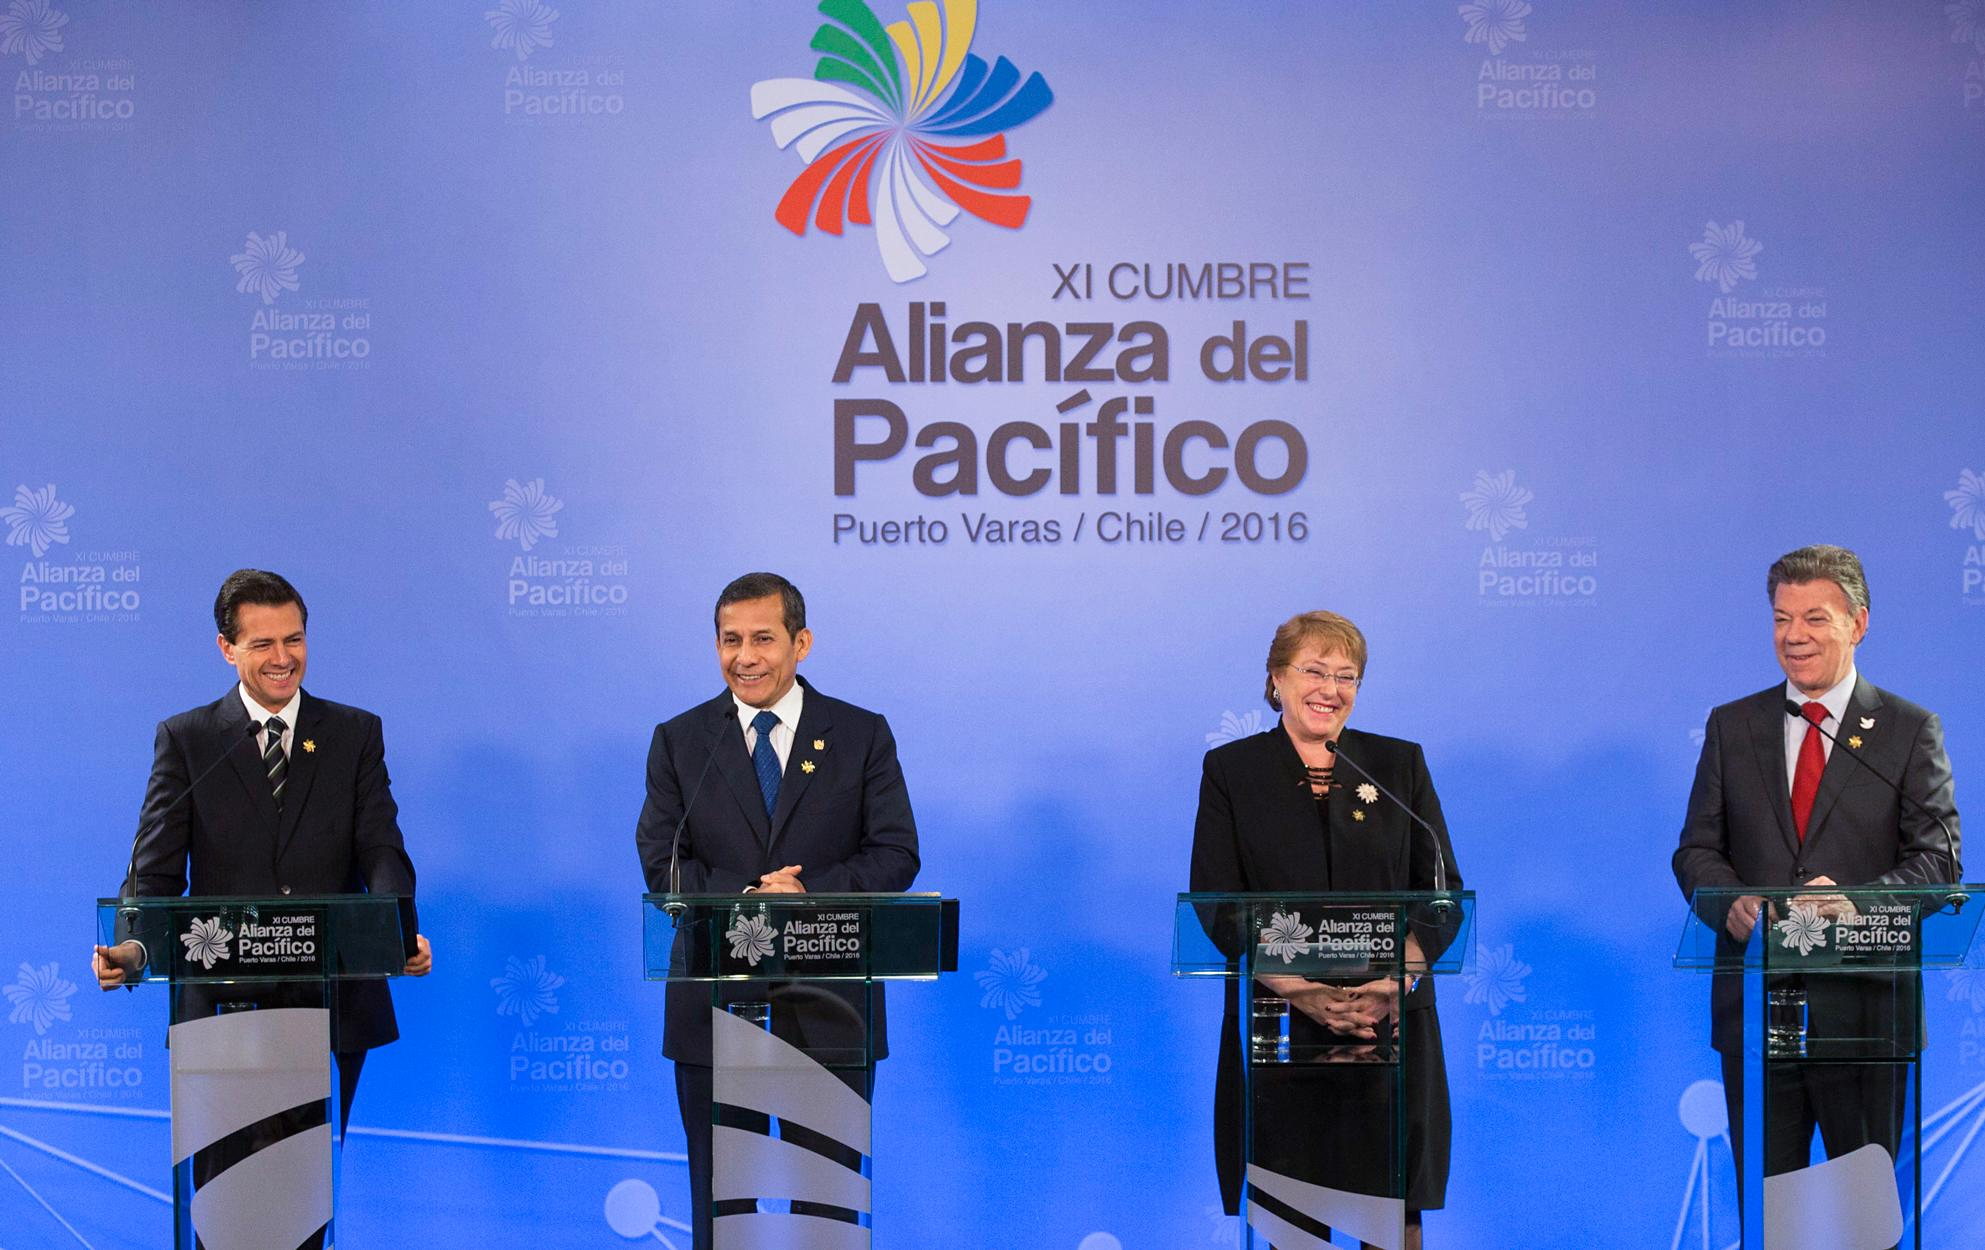 The president concluded his activities at the XI Summit of the Pacific Alliance with a joint press statement, issued with the Presidents of Chile, Colombia and Peru.